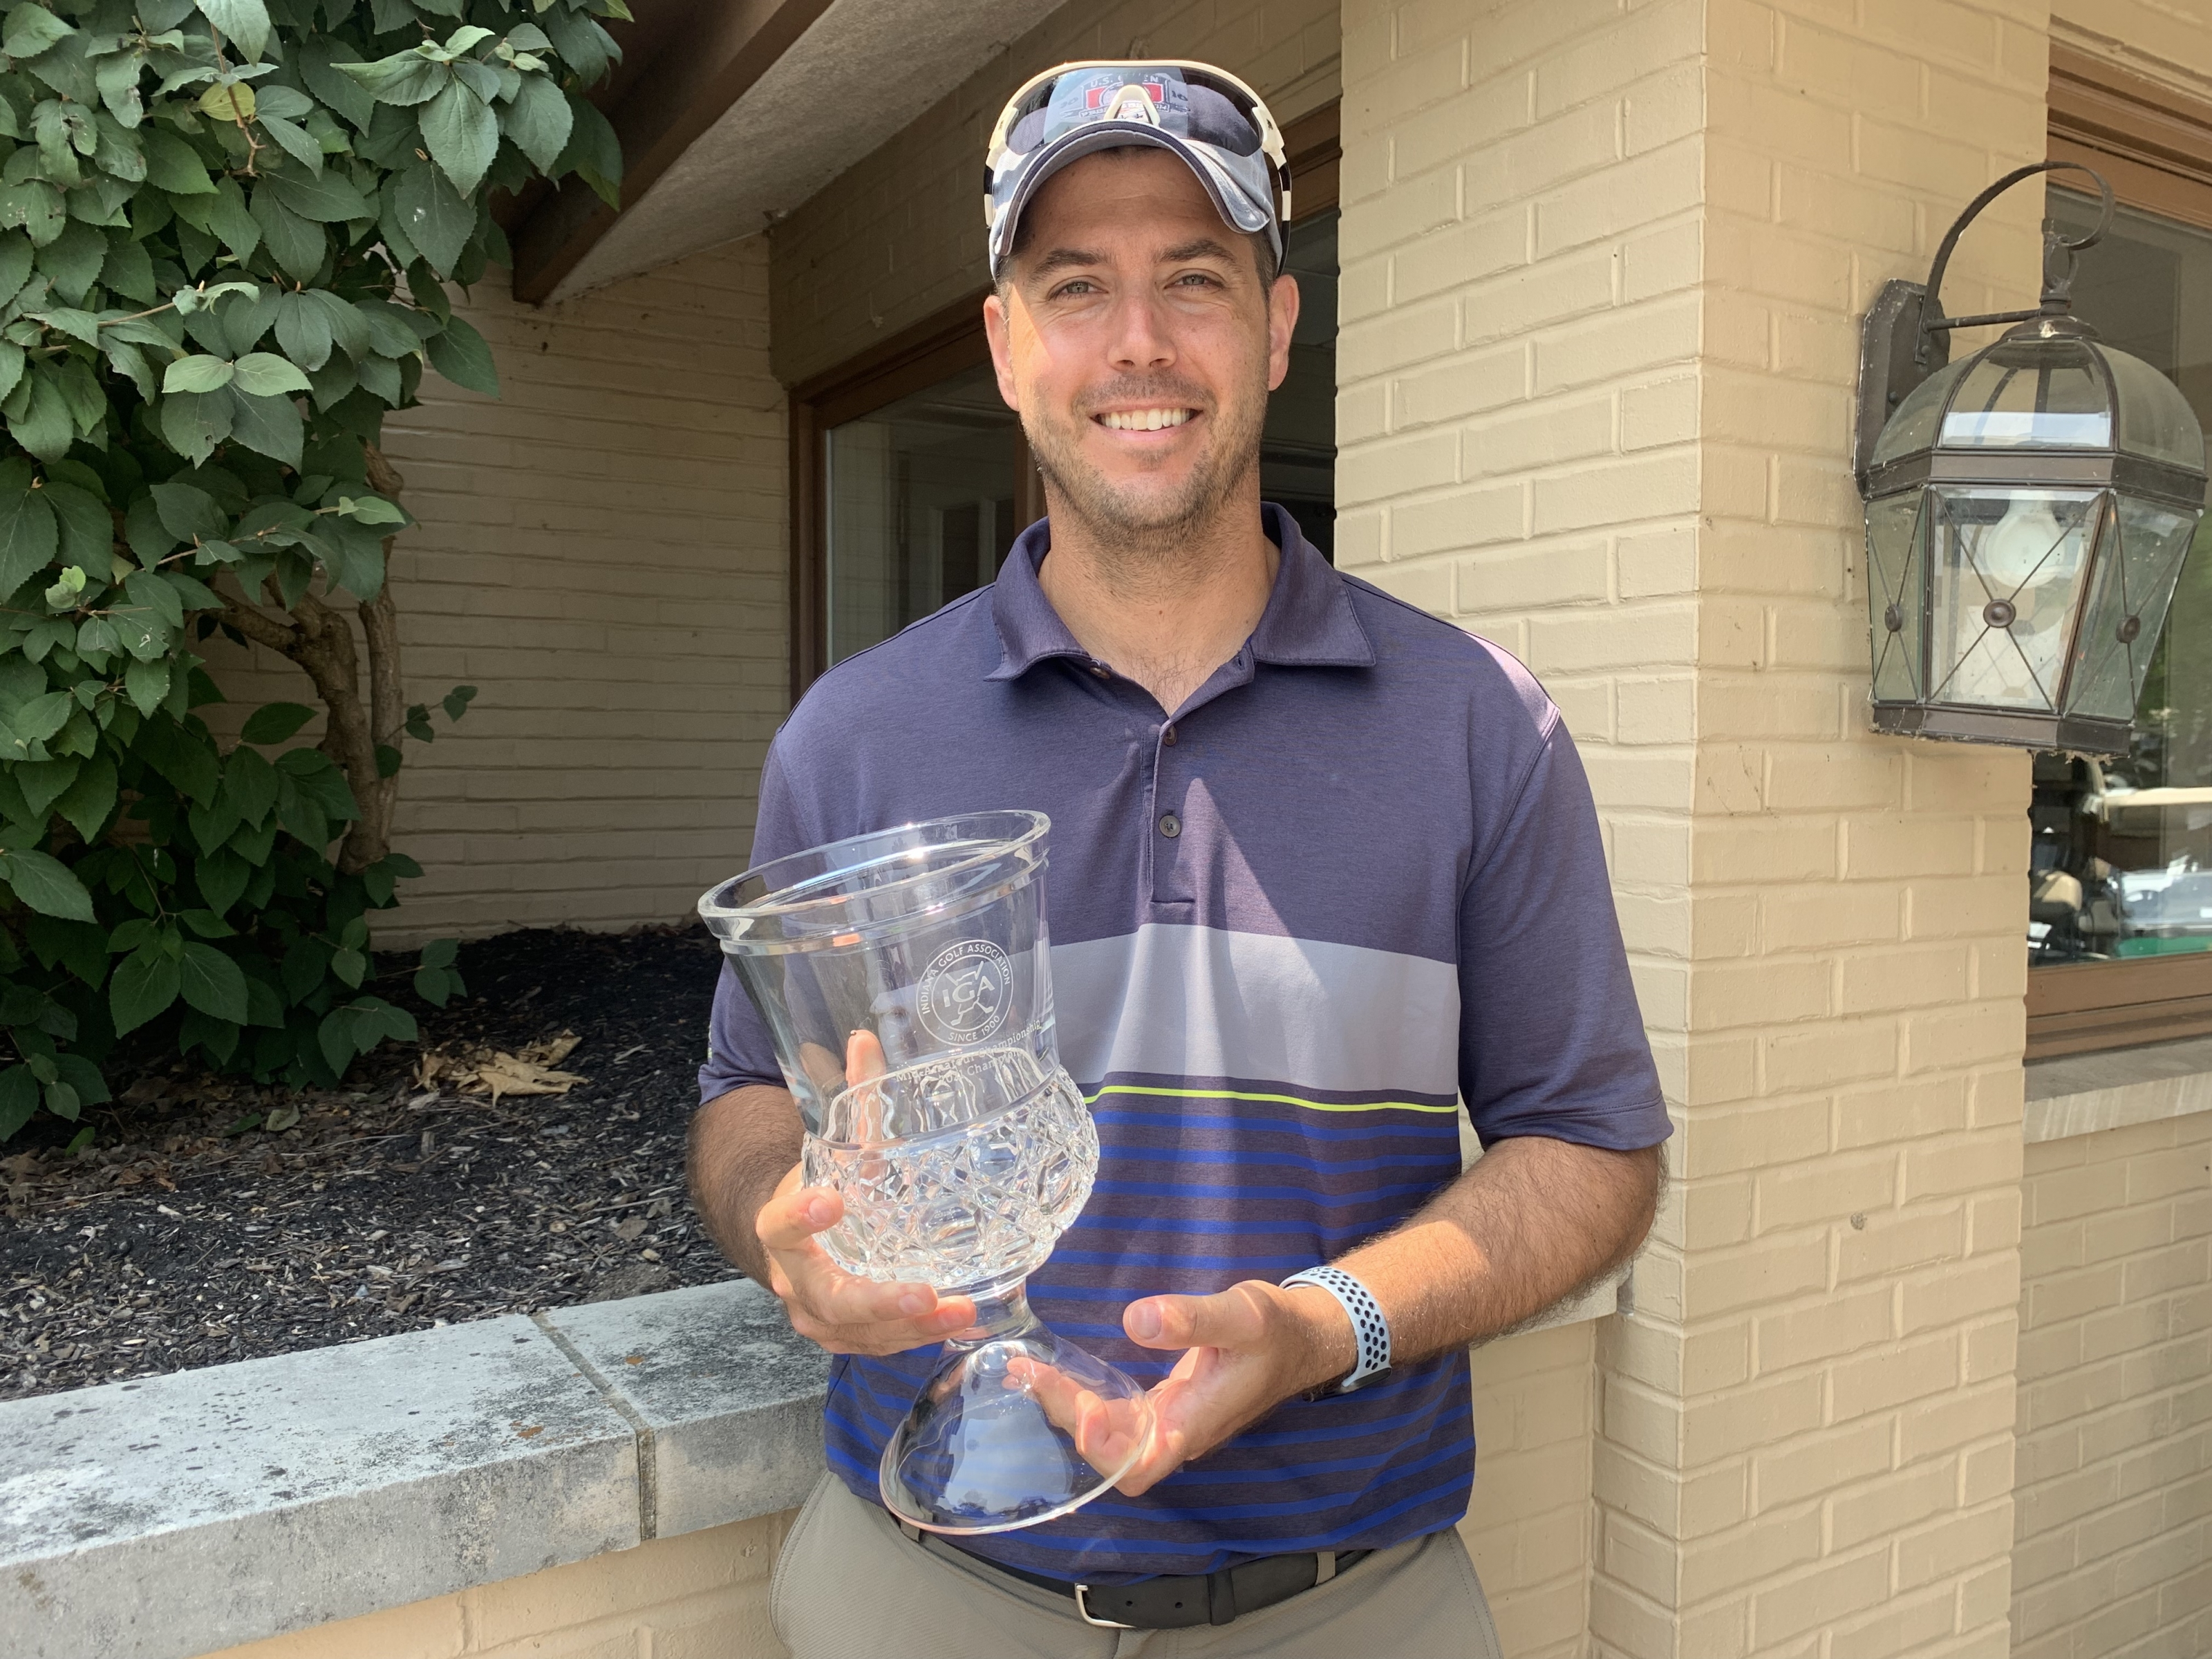 Wenger Goes Low Last Day To Win Mid-Am Champ